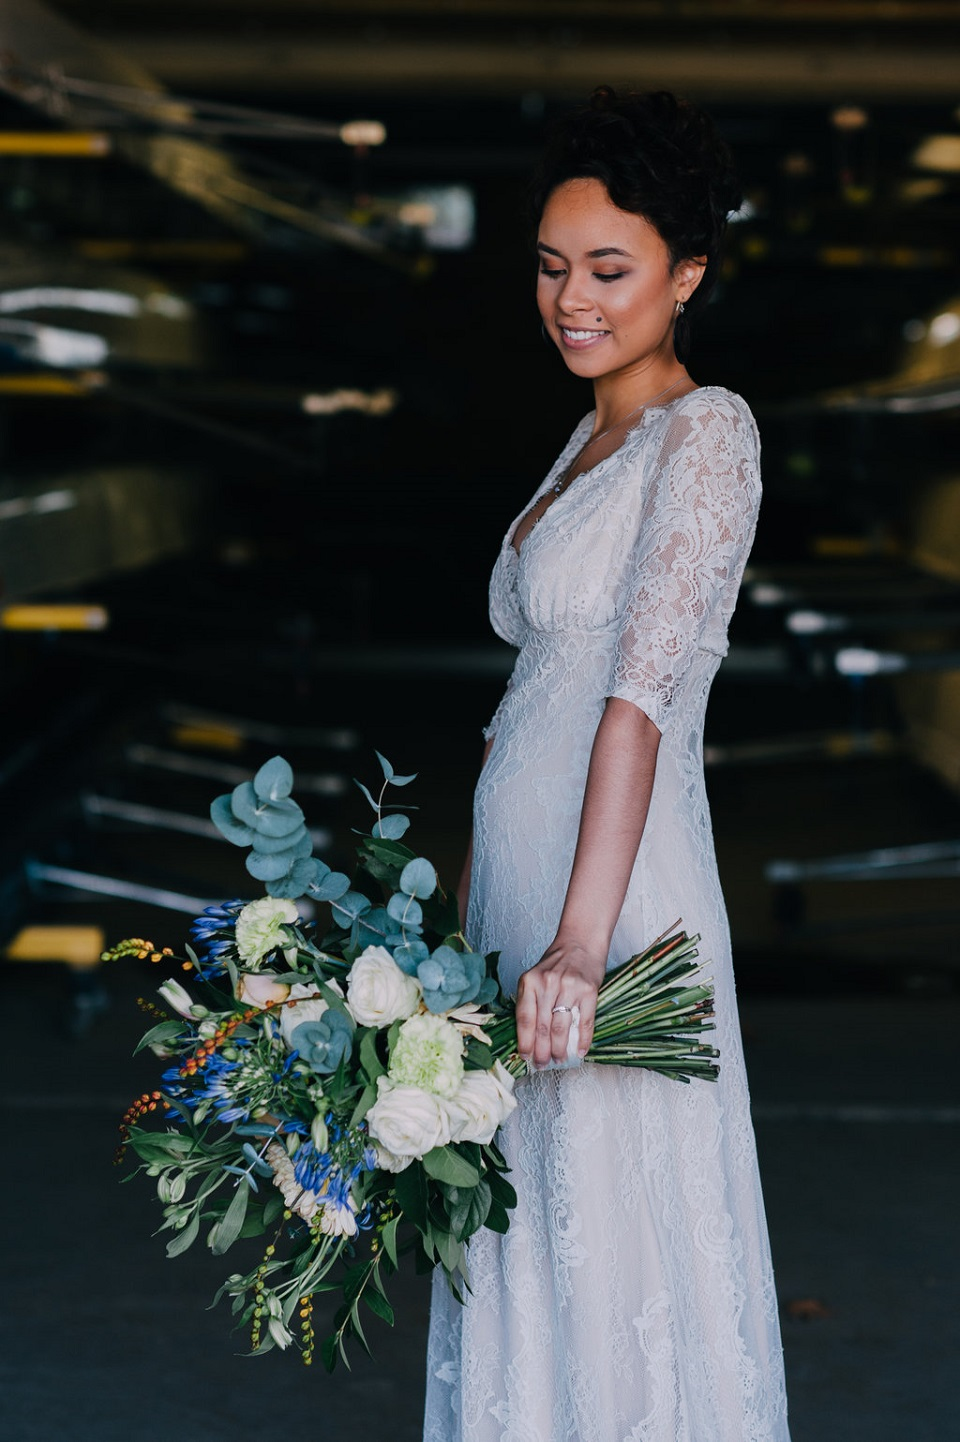 Nulyweds - Anne Schwarz Photography - London Wedding 27